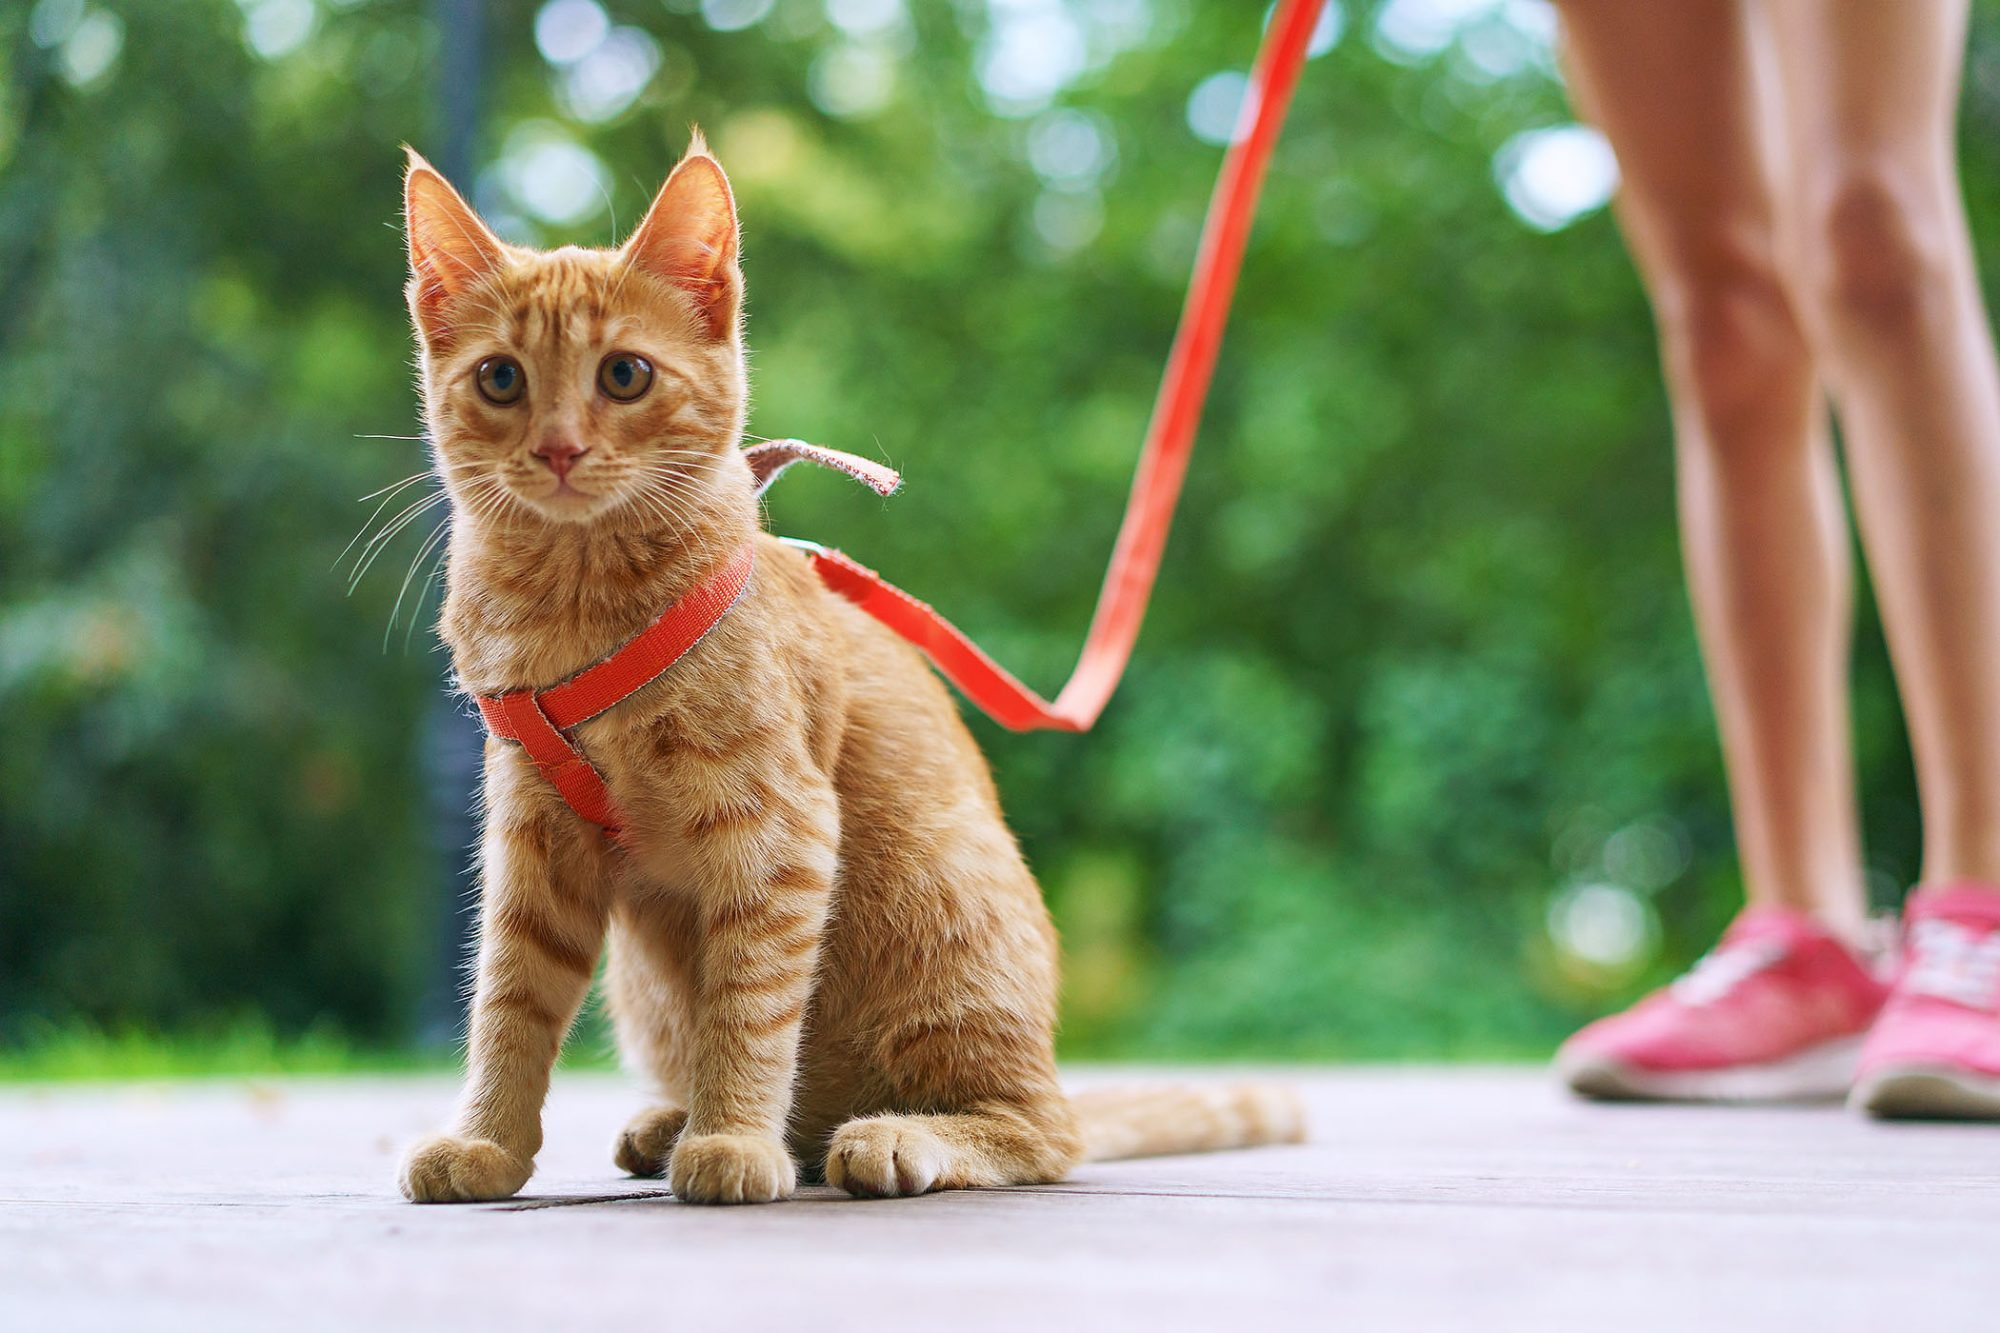 girl walking cat with harness